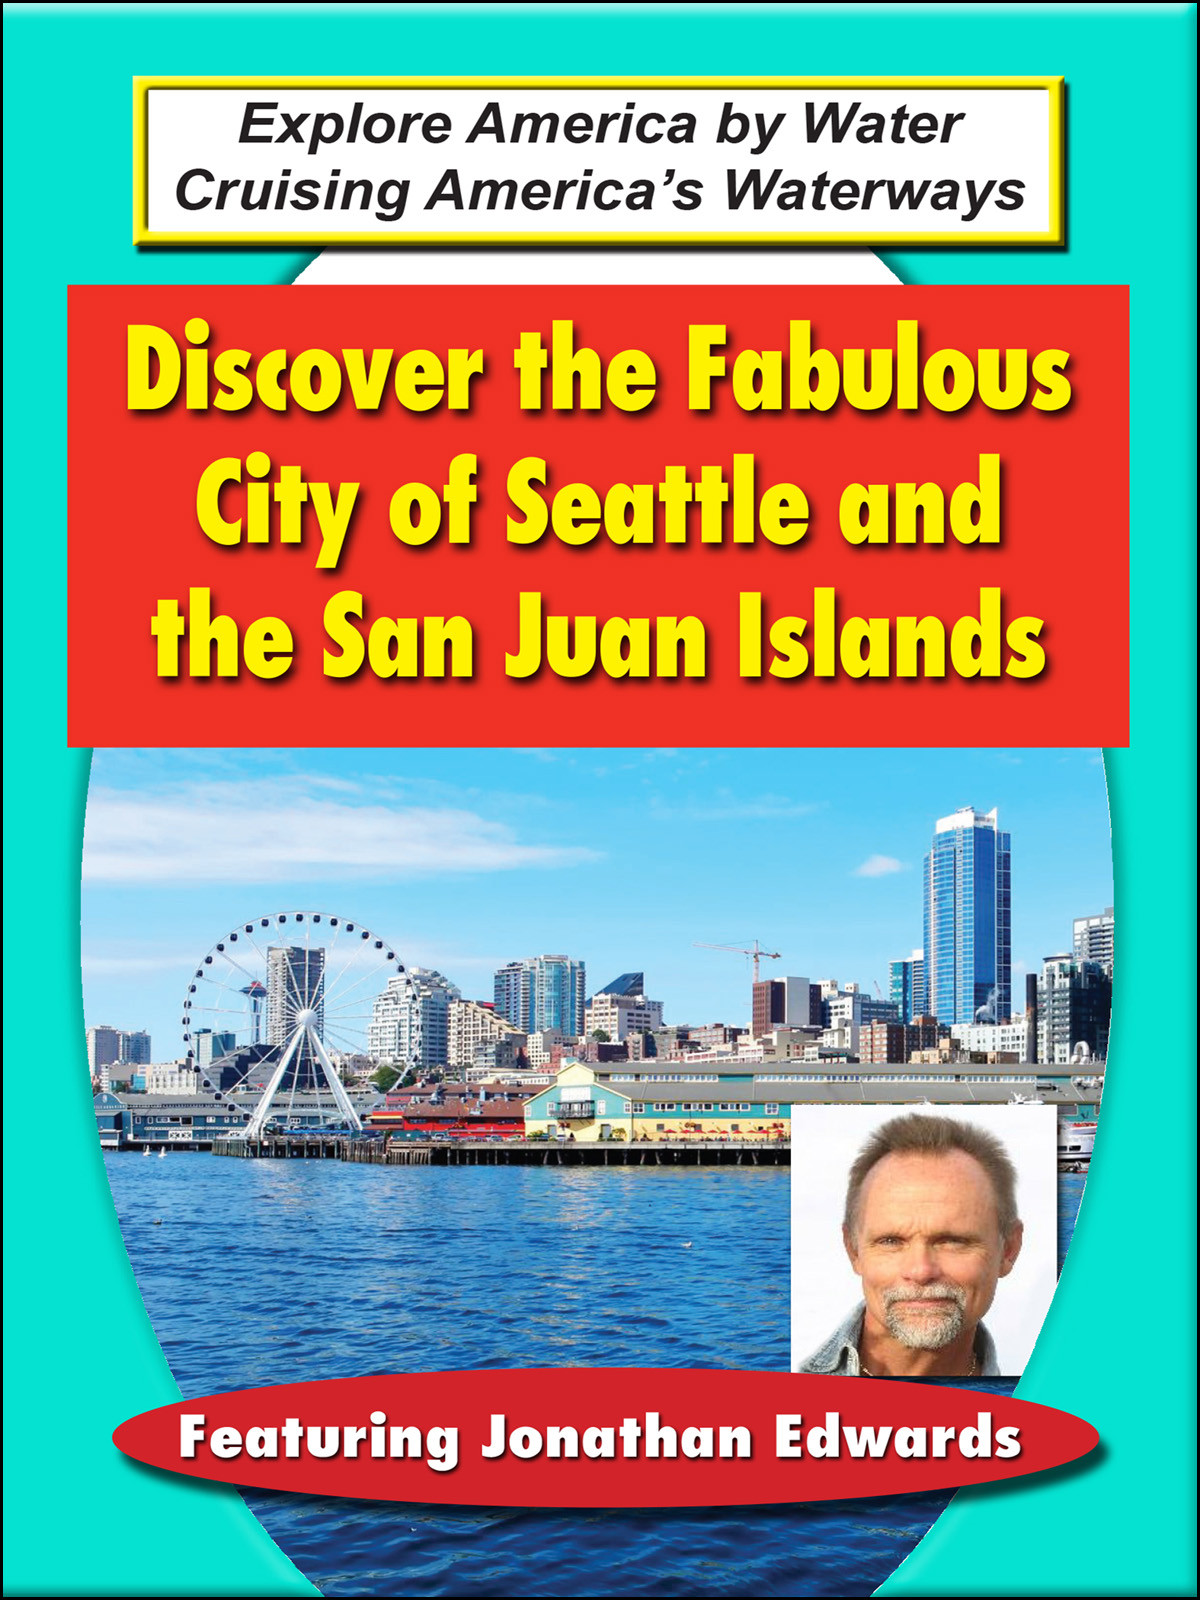 T8900 - Discover The Fabulous City of Seattle and the San Juan Islands